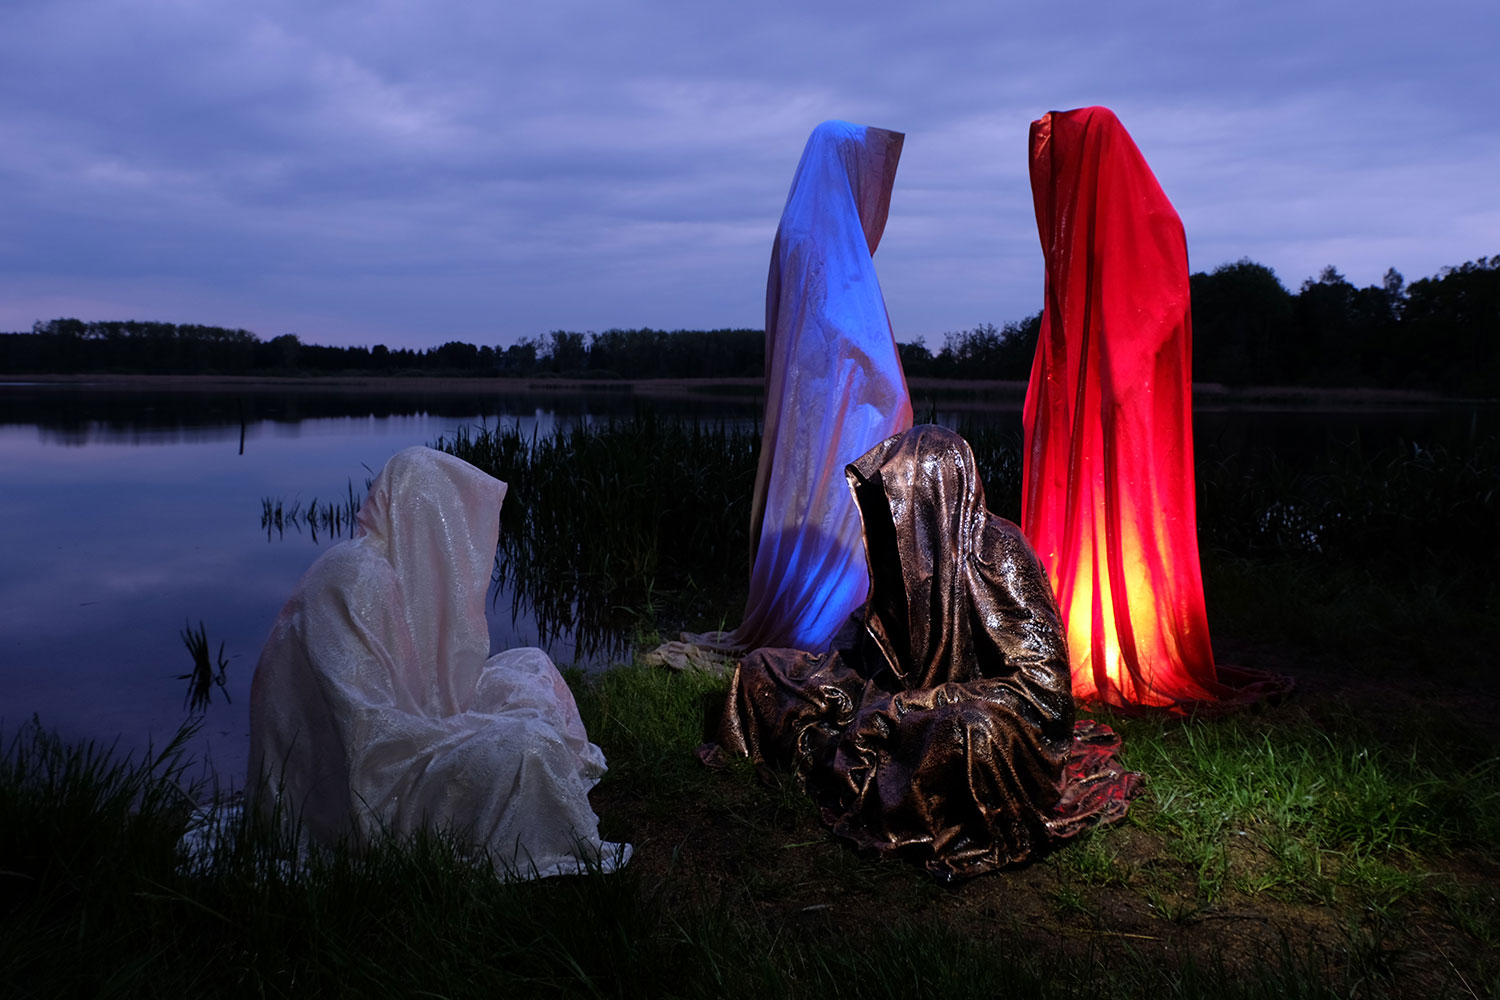 farryman-pound-lake-waldviertel-austria-guardians-of-time-manfred-kielnhofer-contemporary-art-design-arts-theater-dance-arte-performance-show-3167